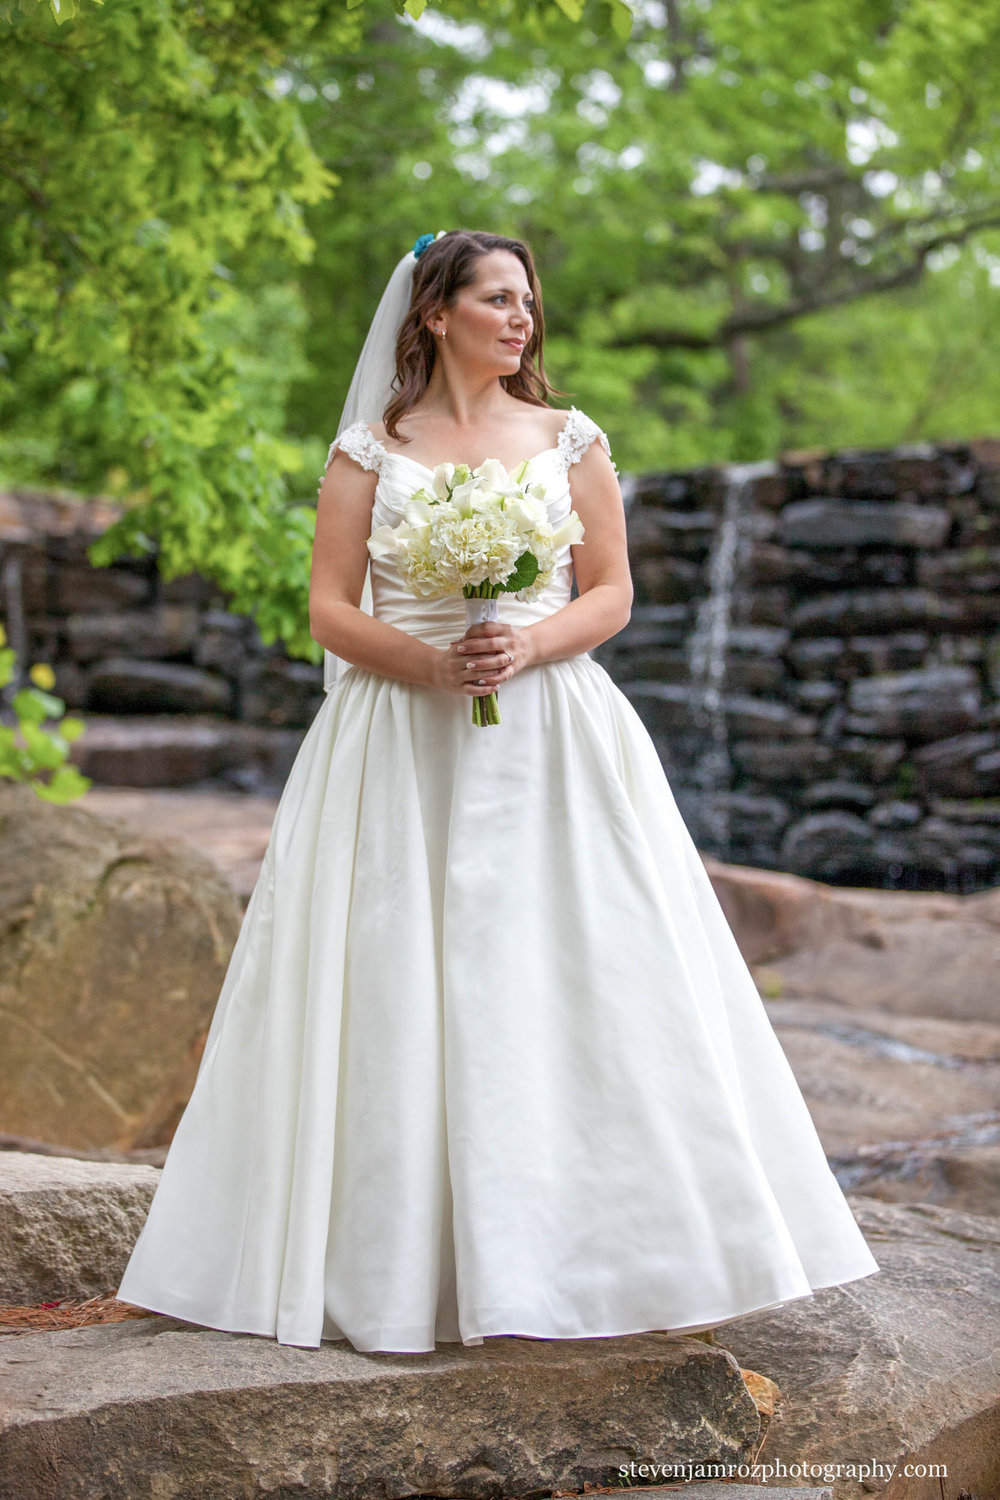 outdoor-yates-mill-bridal-photos-steven-jamroz-photography-0291.jpg